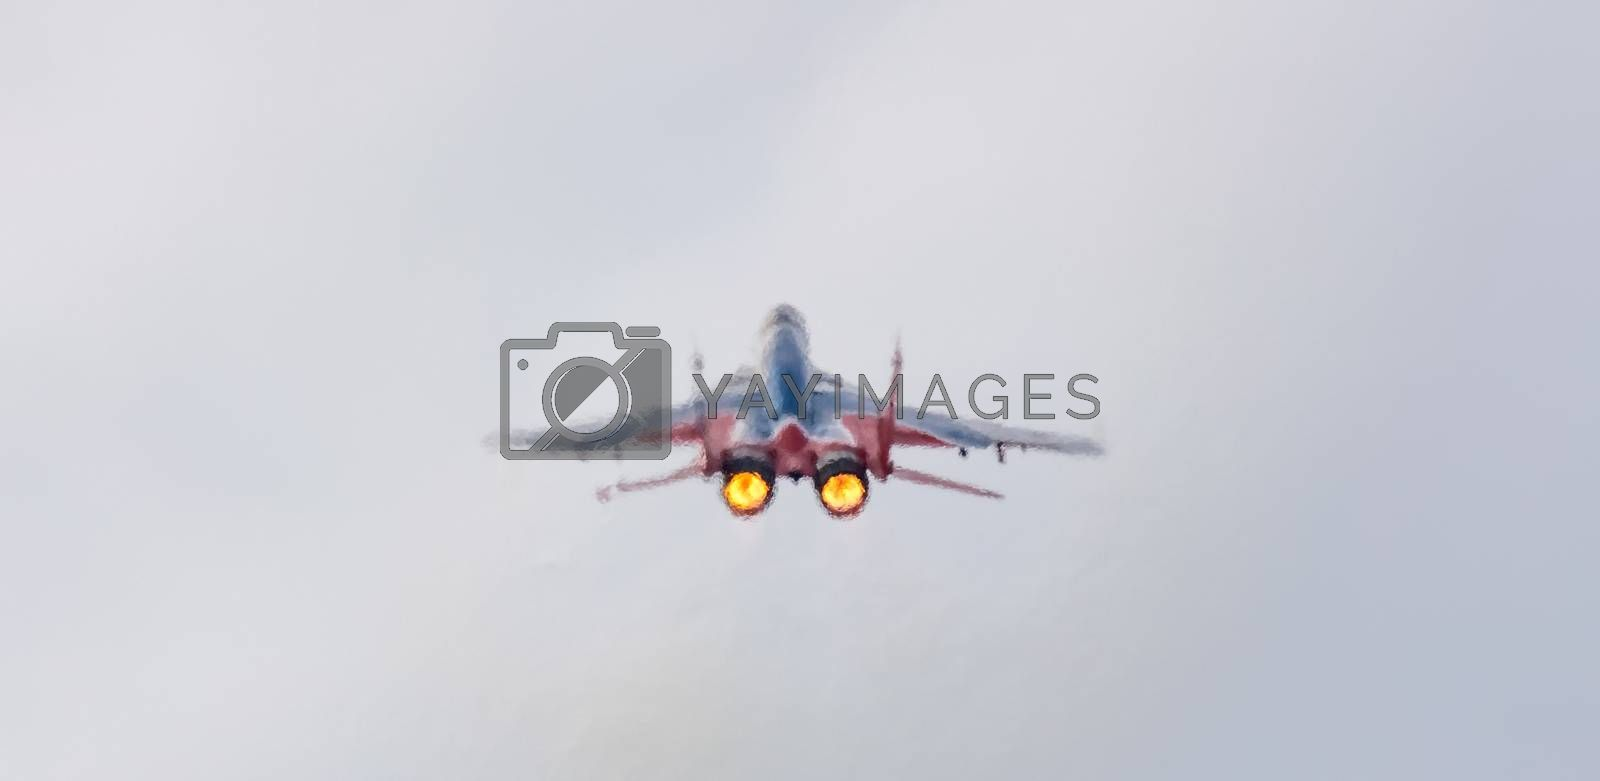 Barnaul, Russia - September 19, 2020: A low angle close-up shot of Strizhi MiG-29 fighter jet performing stunts during an aeroshow. Two jets heating up air and making it blurry around the plane.